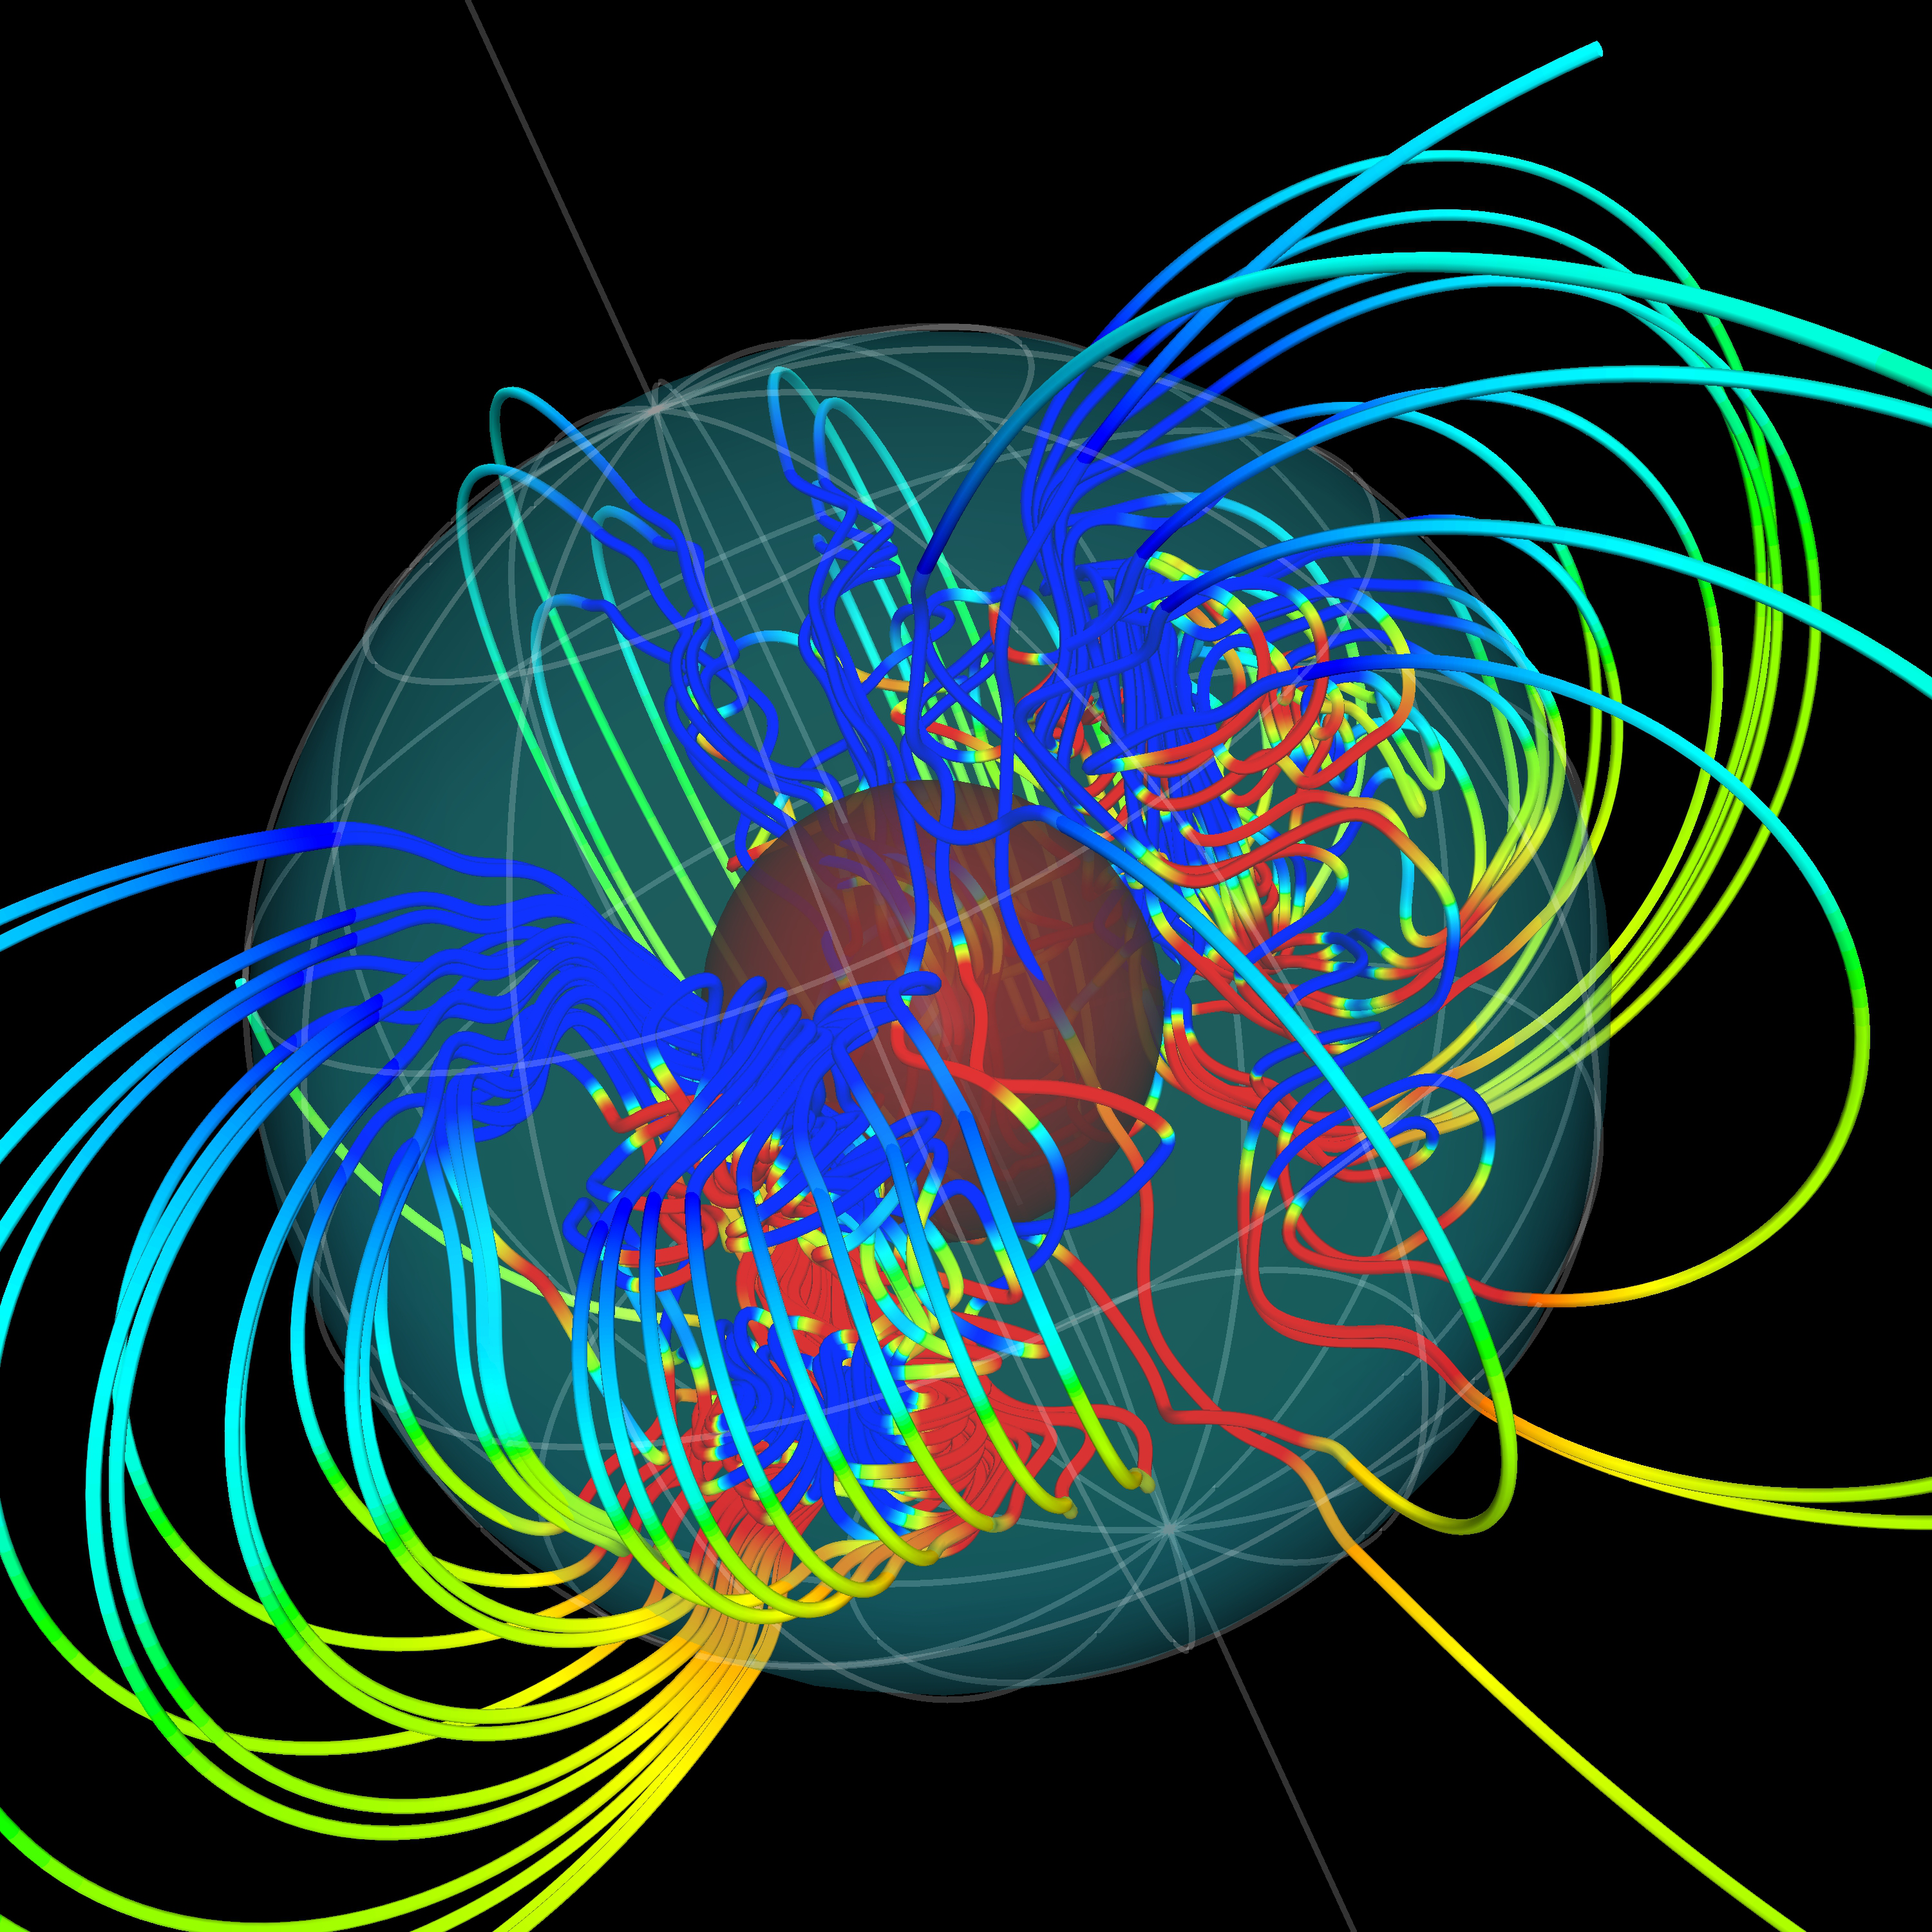 Depiction of Magnetic field lines coming out of the Earth's core